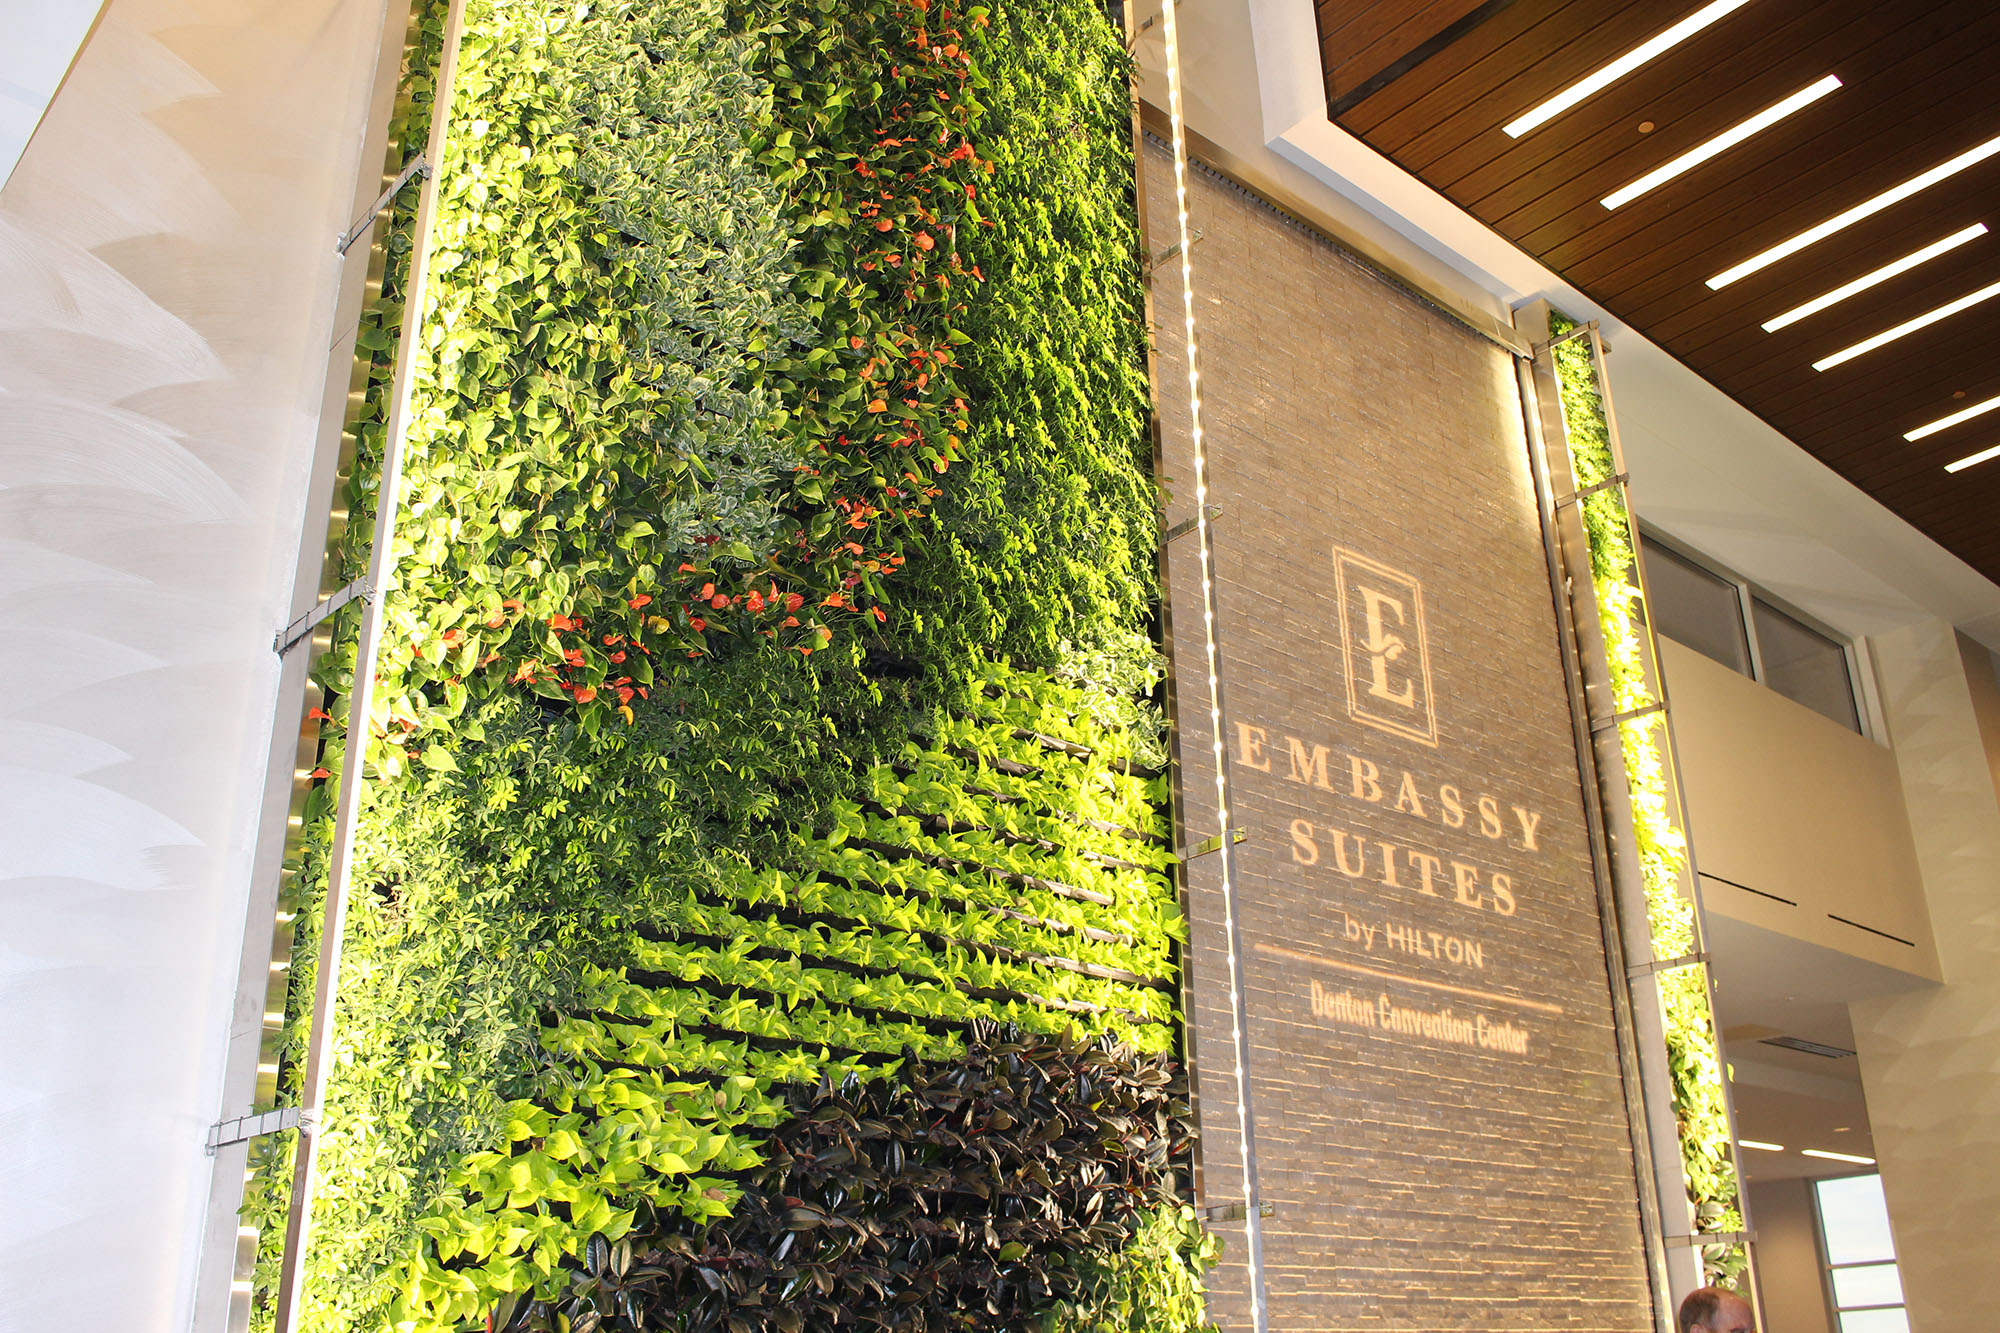 Beautiful living green plant wall inside the Embassy Suites by Hilton.